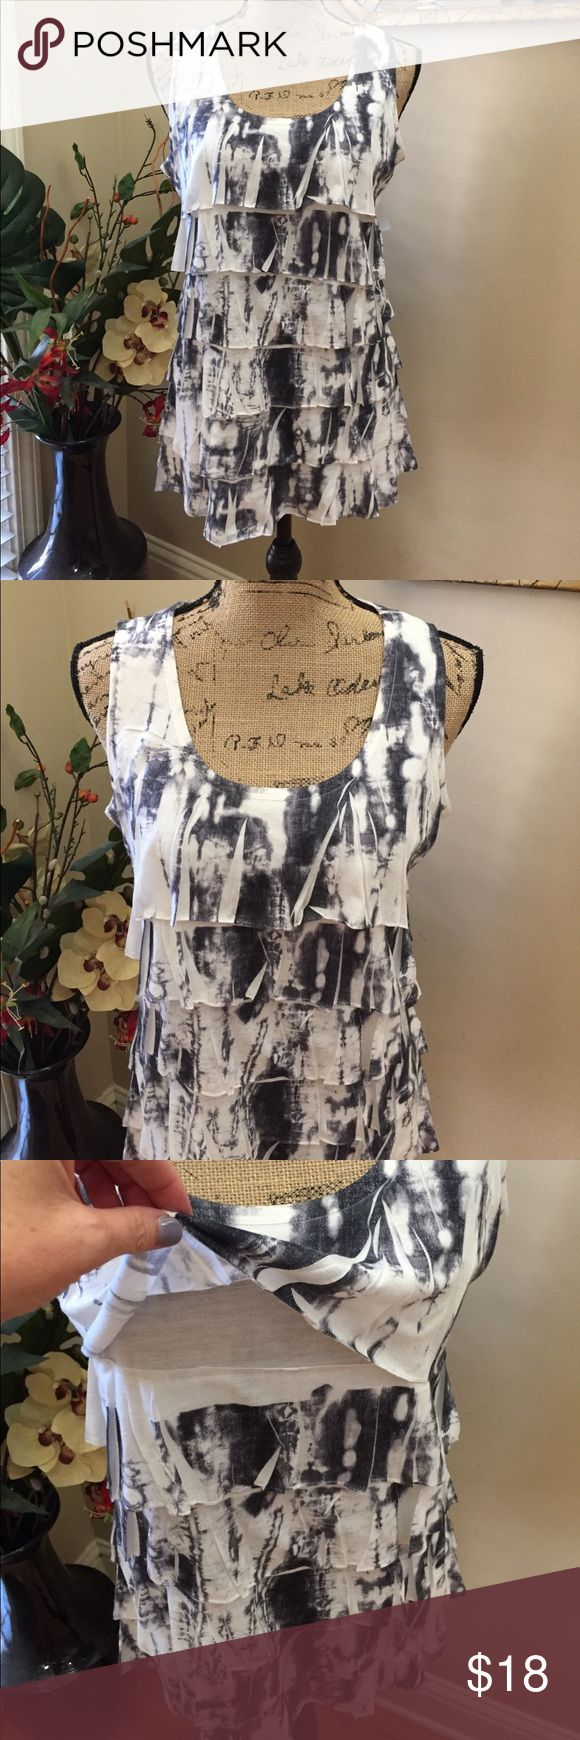 """💜💜Coldwater Creek ruffled tie dye tunic 💜💜Coldwater Creek ruffled tie dye tunic. This is a well made lined blouse with interesting ruffles throughout. Tie dye with BOHO love in deep greys on a white background. Preloved in excellent condition. Pit to pit measurement is 18"""". Not much stretch. Length is 26"""". Coldwater Creek Tops Tunics"""